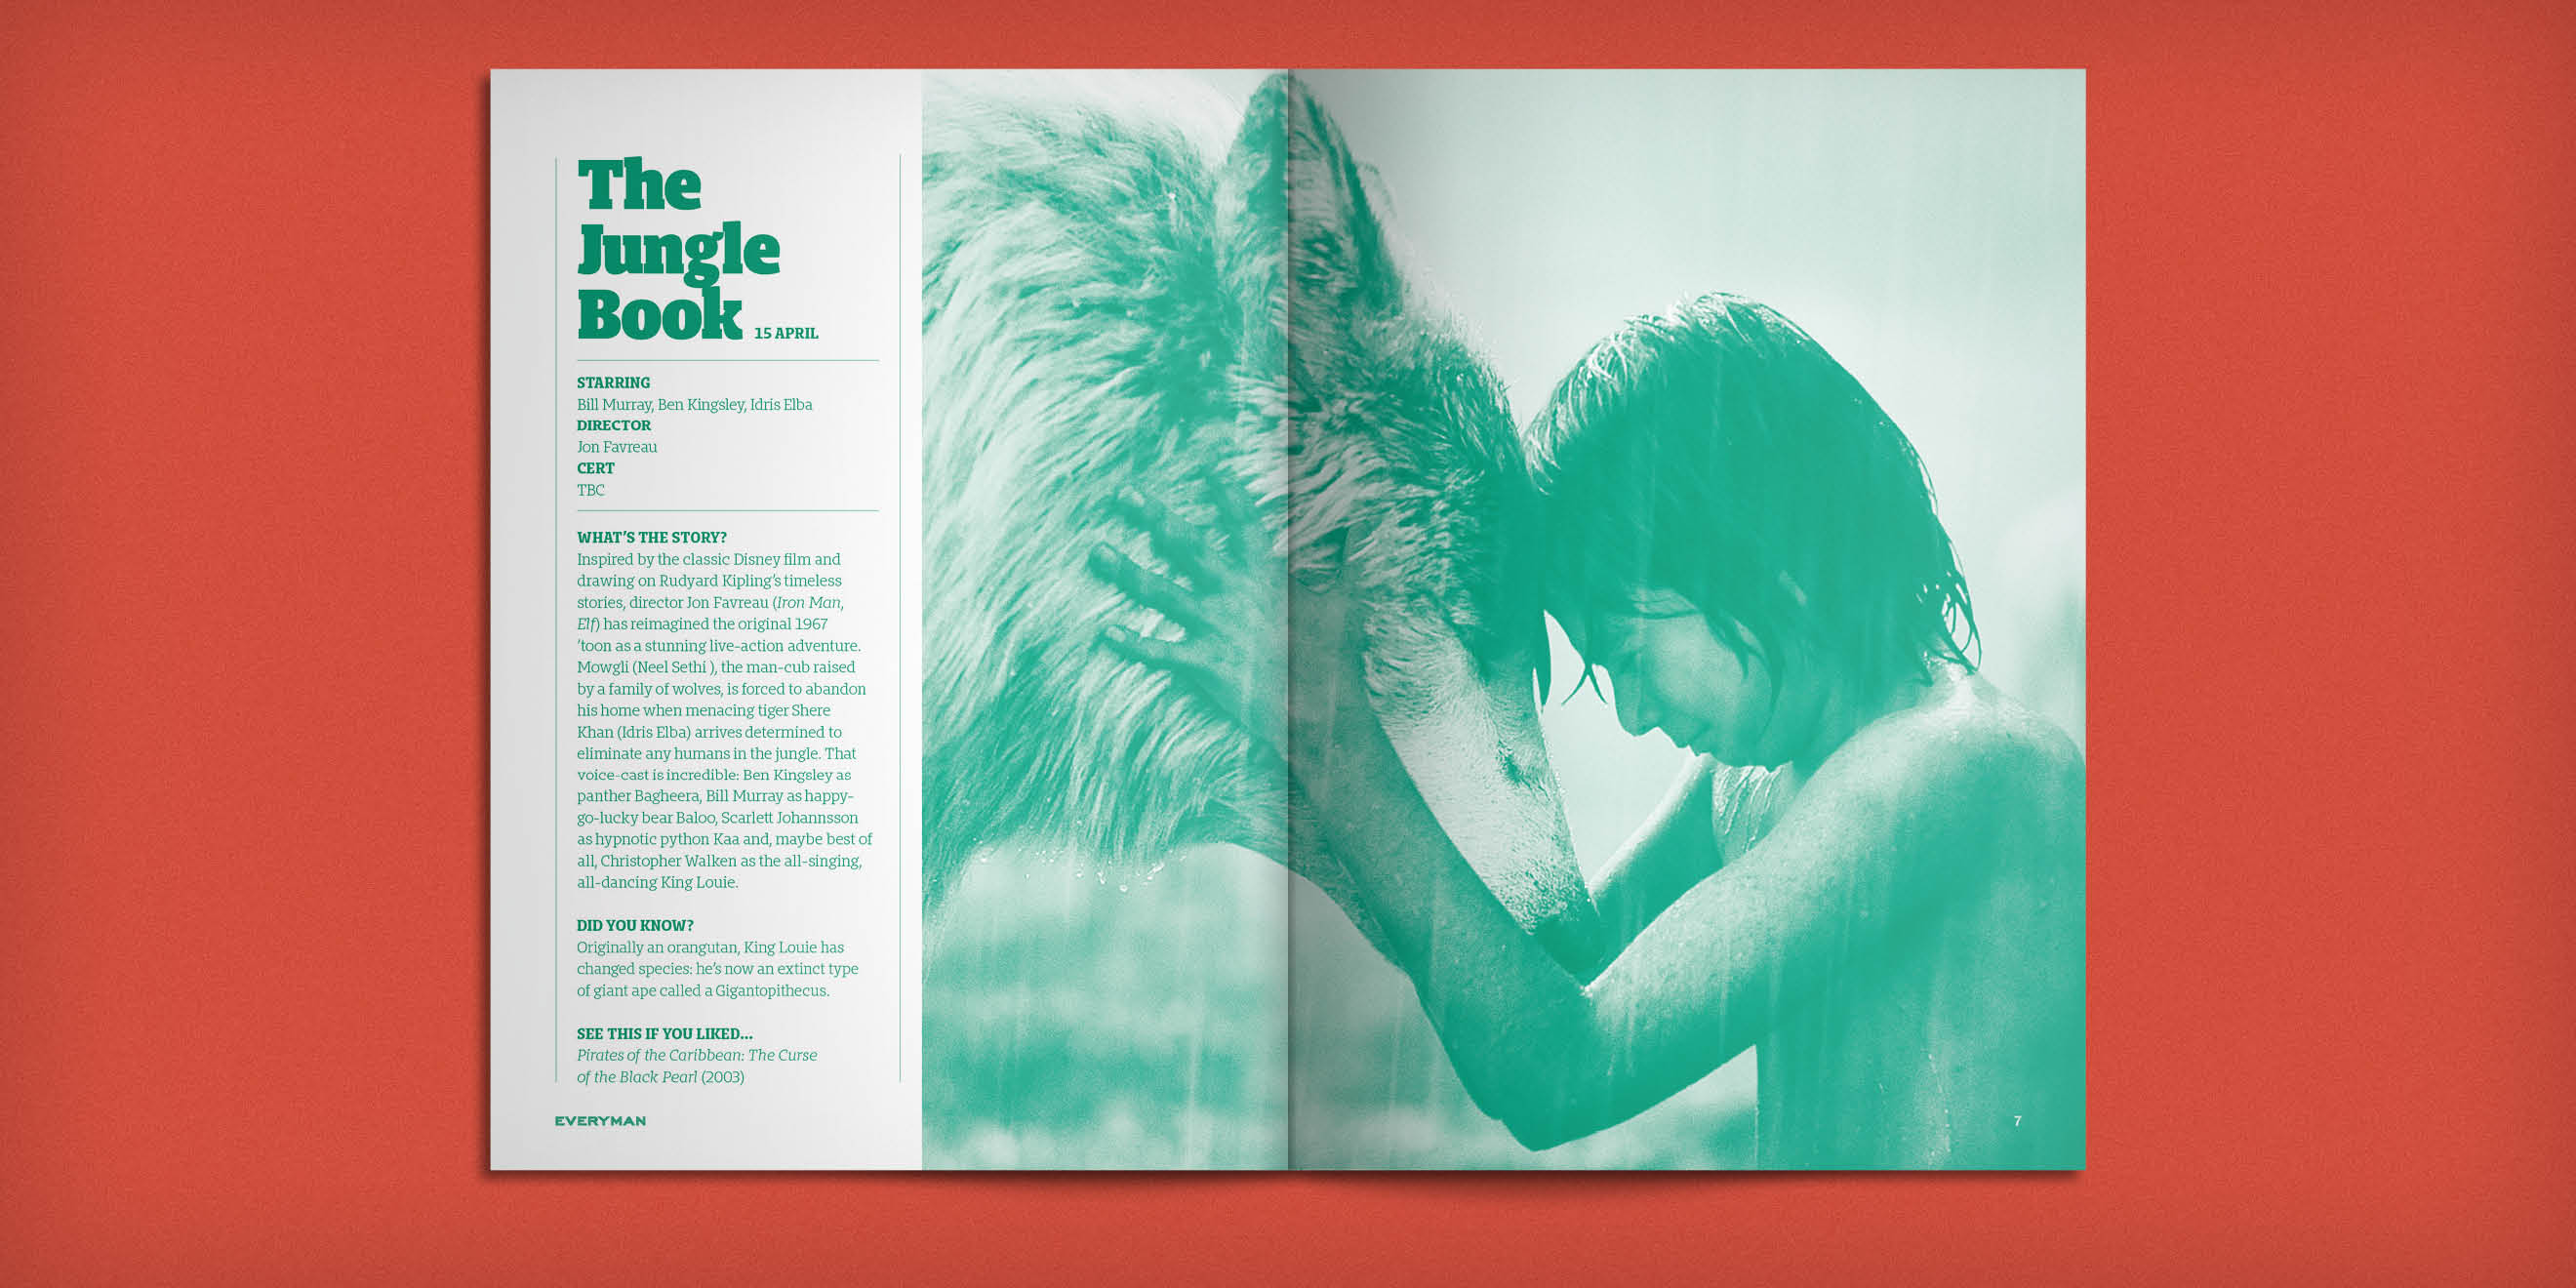 Everyman Cinemas Everyman Magazine - The Jungle Book spread - by Human After All